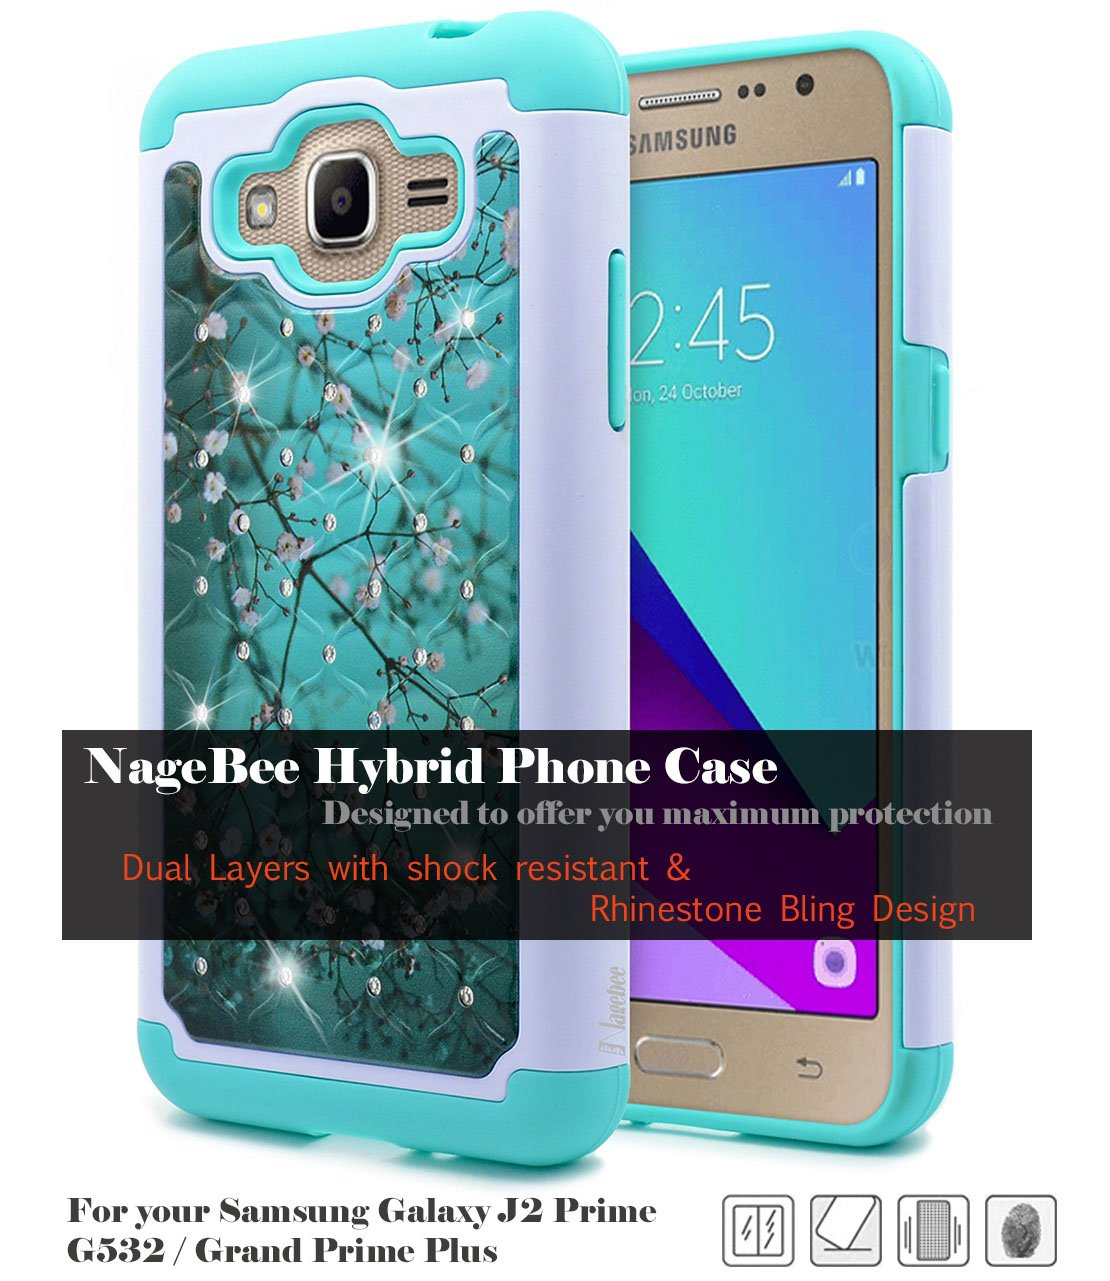 Galaxy J2 Prime Case Nagebee Hybrid Protective Armor Samsung G532 8gb Soft Silicone Cover With Studded Rhinestone Bling Design Hard For